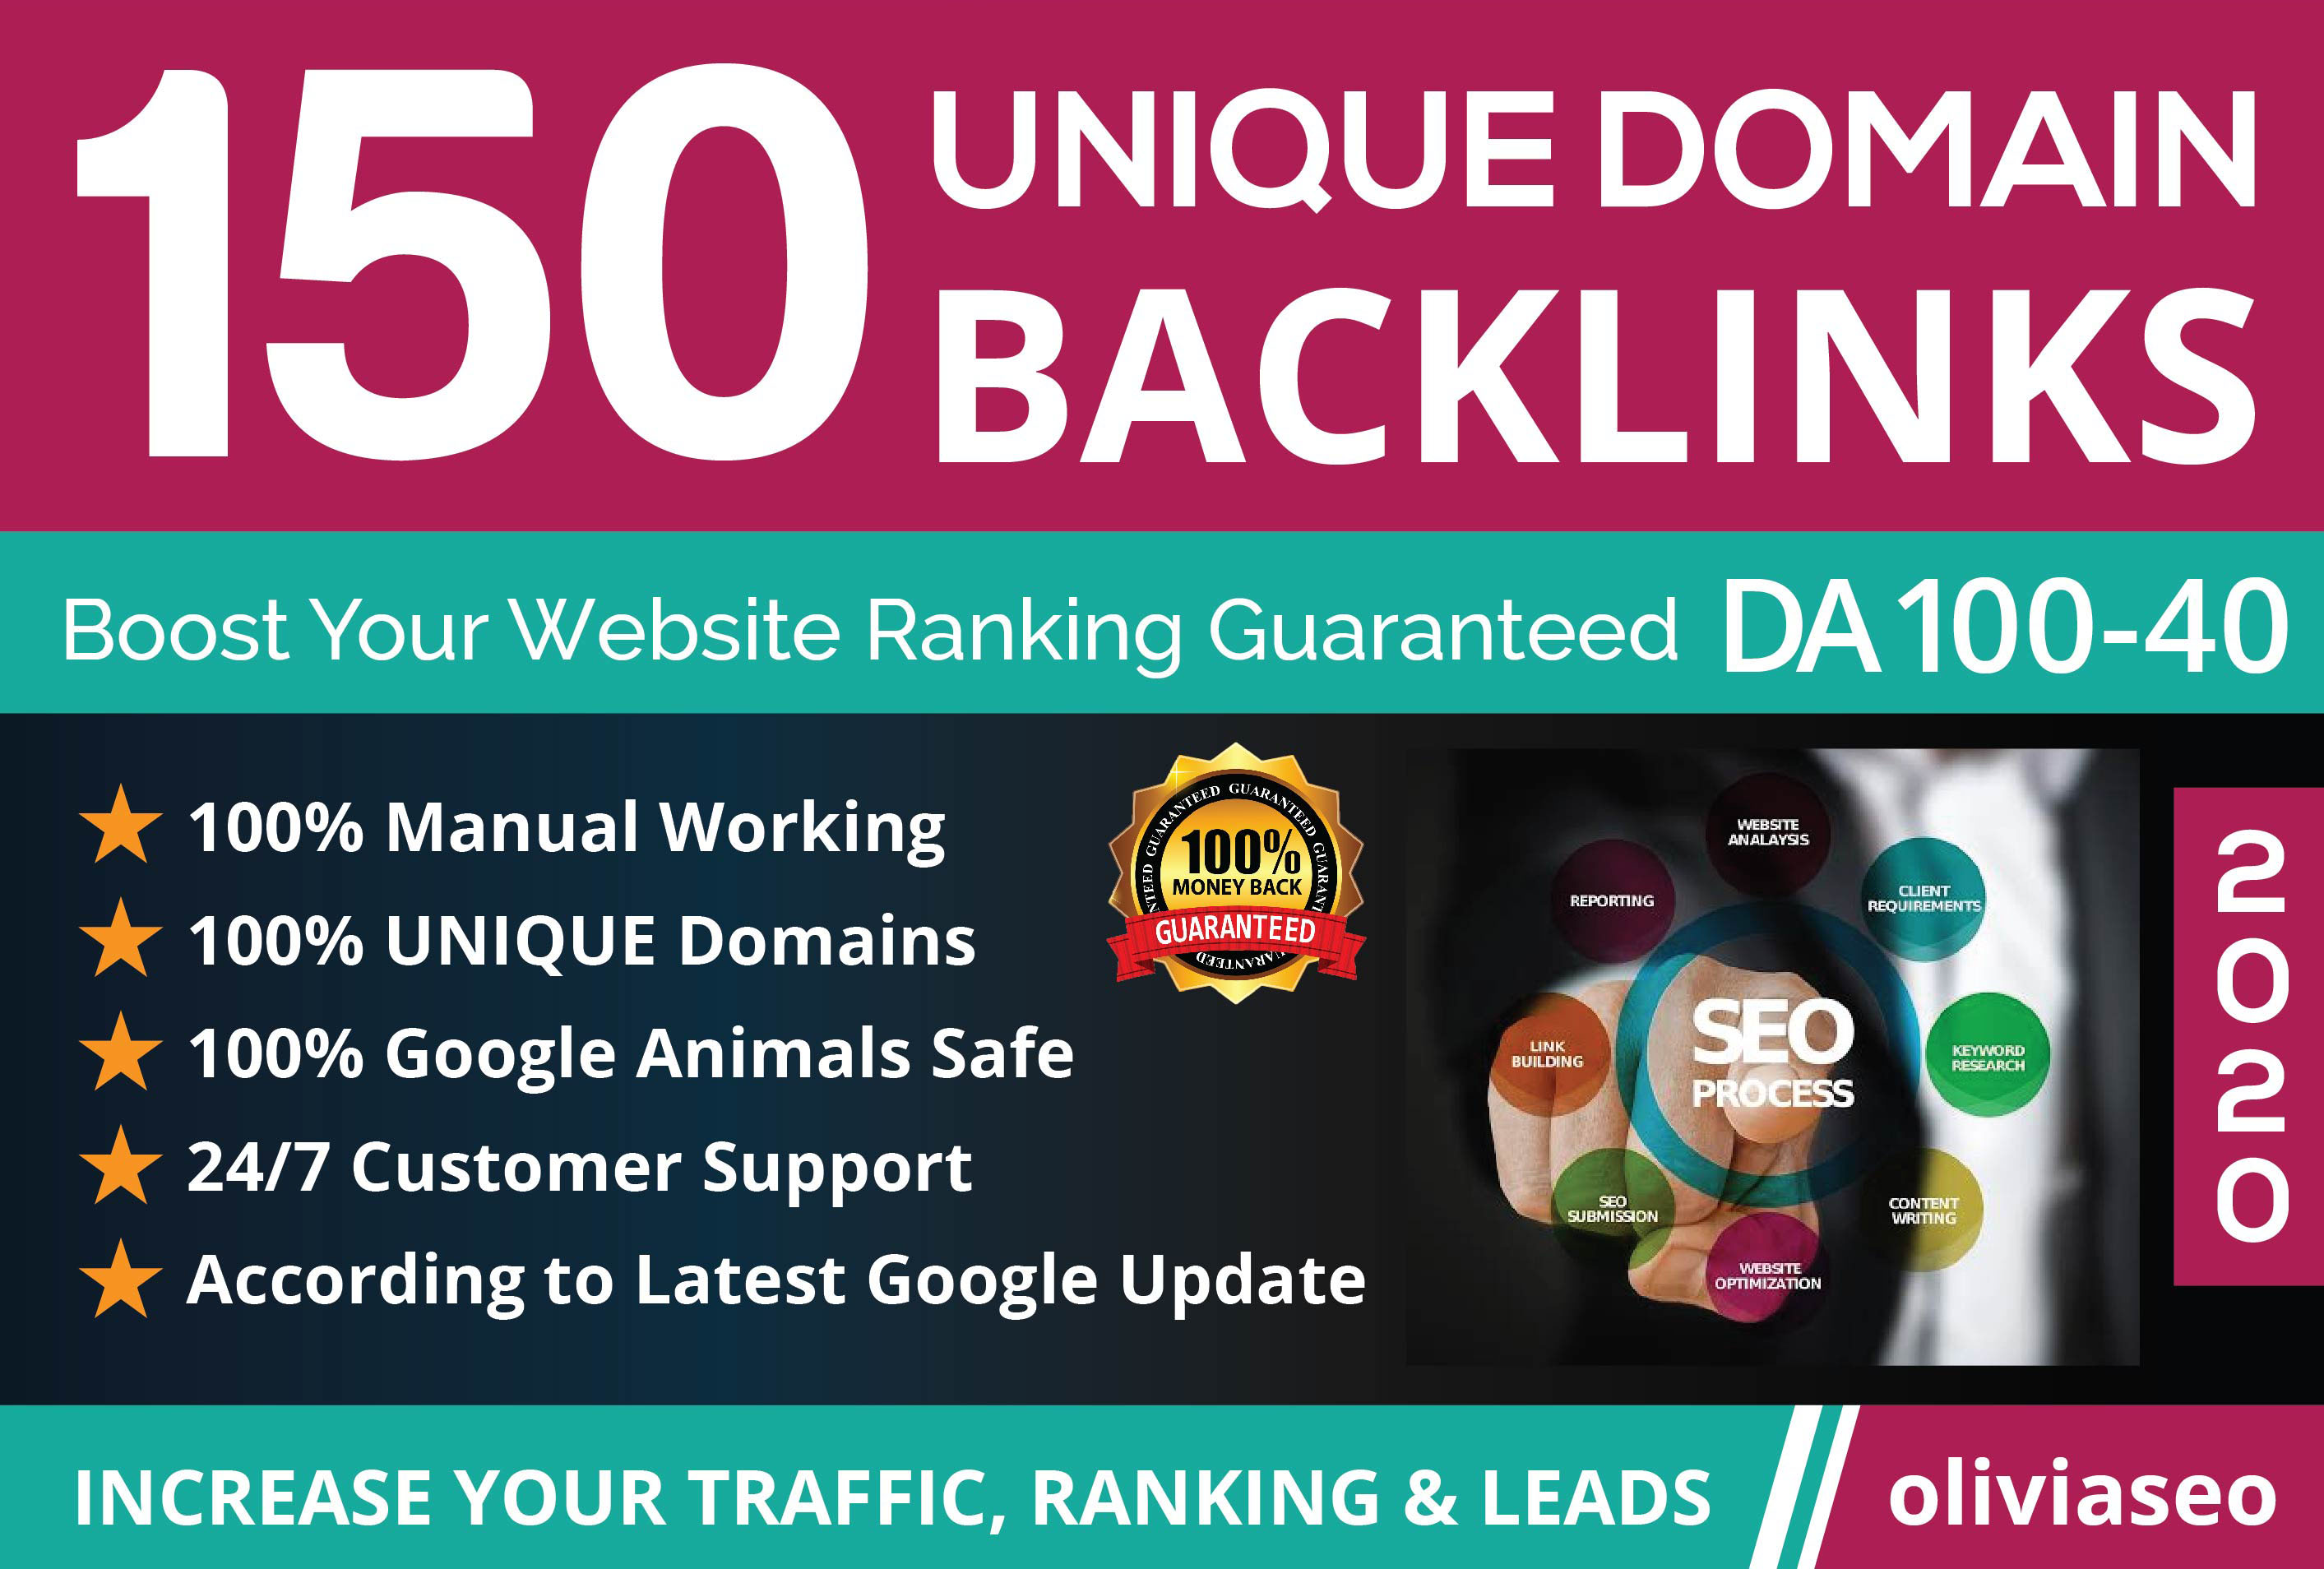 Provide 150 Unique Domain PR7 SEO BackIinks on DA100 sites Plus Edu. Gov Links